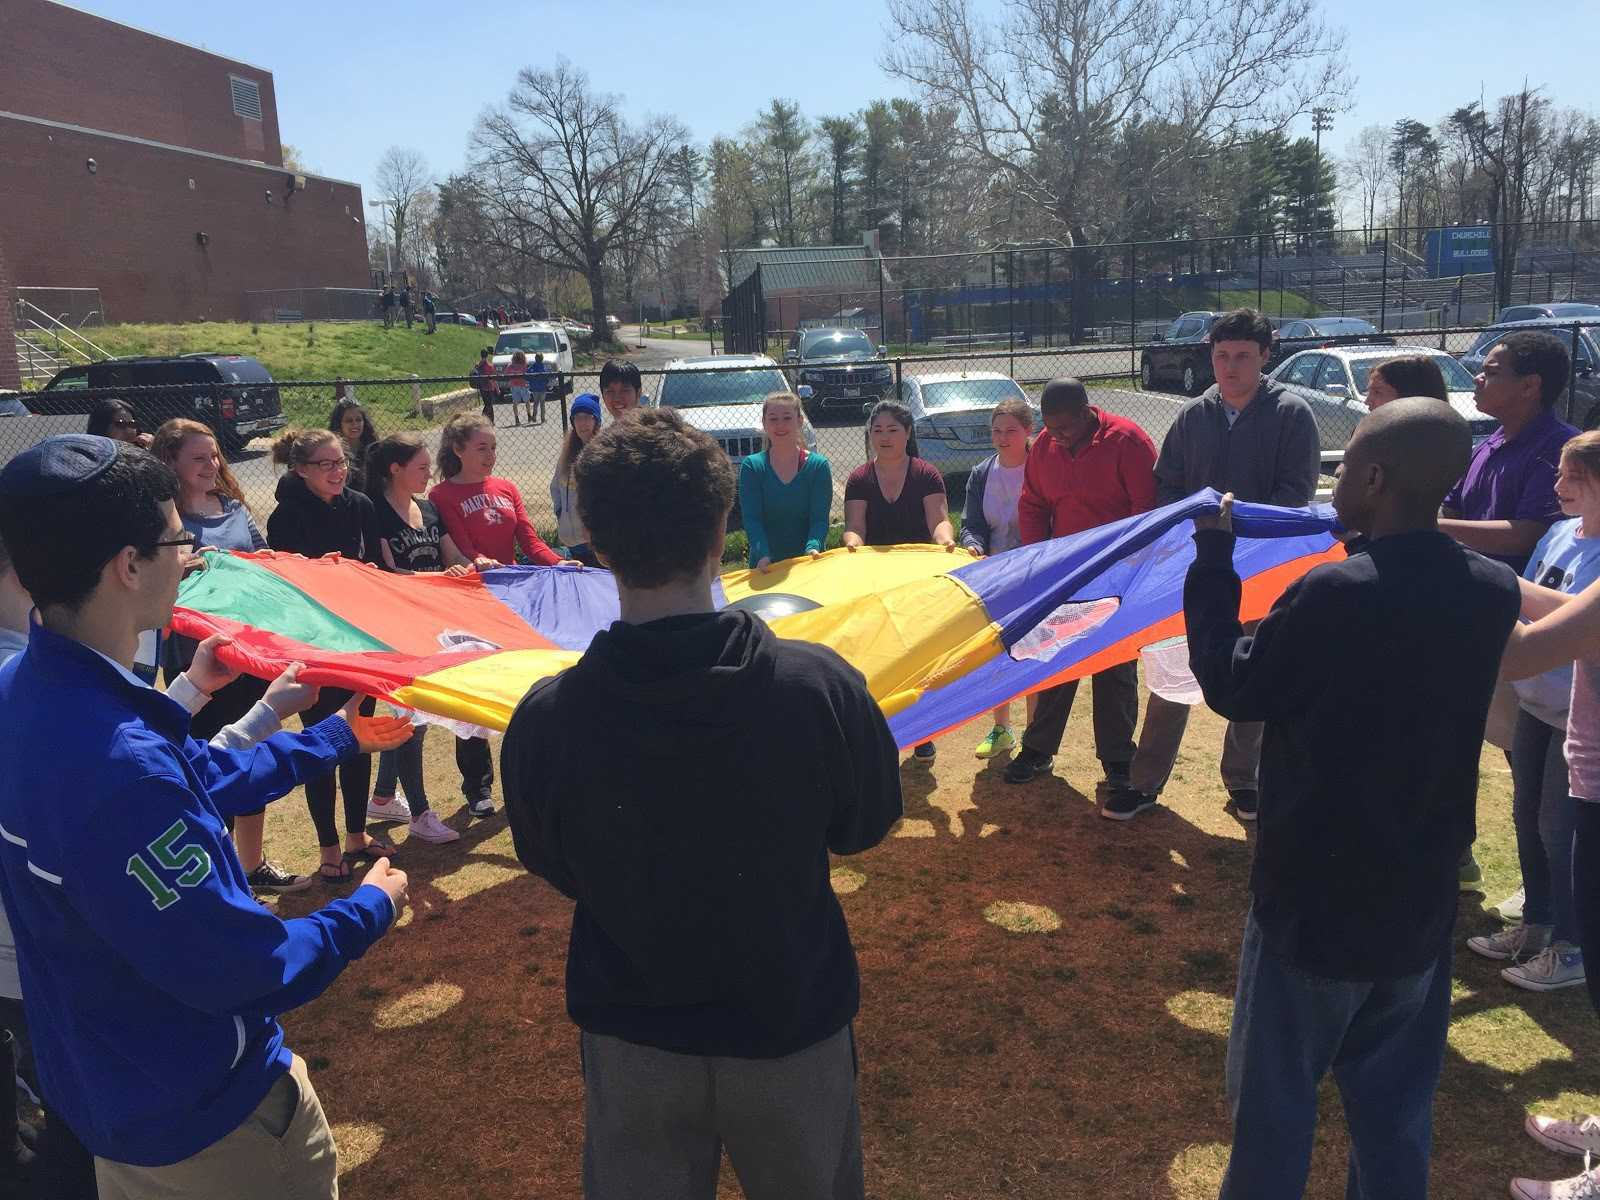 The Best Buddies Club at CHS uses friendship building in order to unite students with their buddies